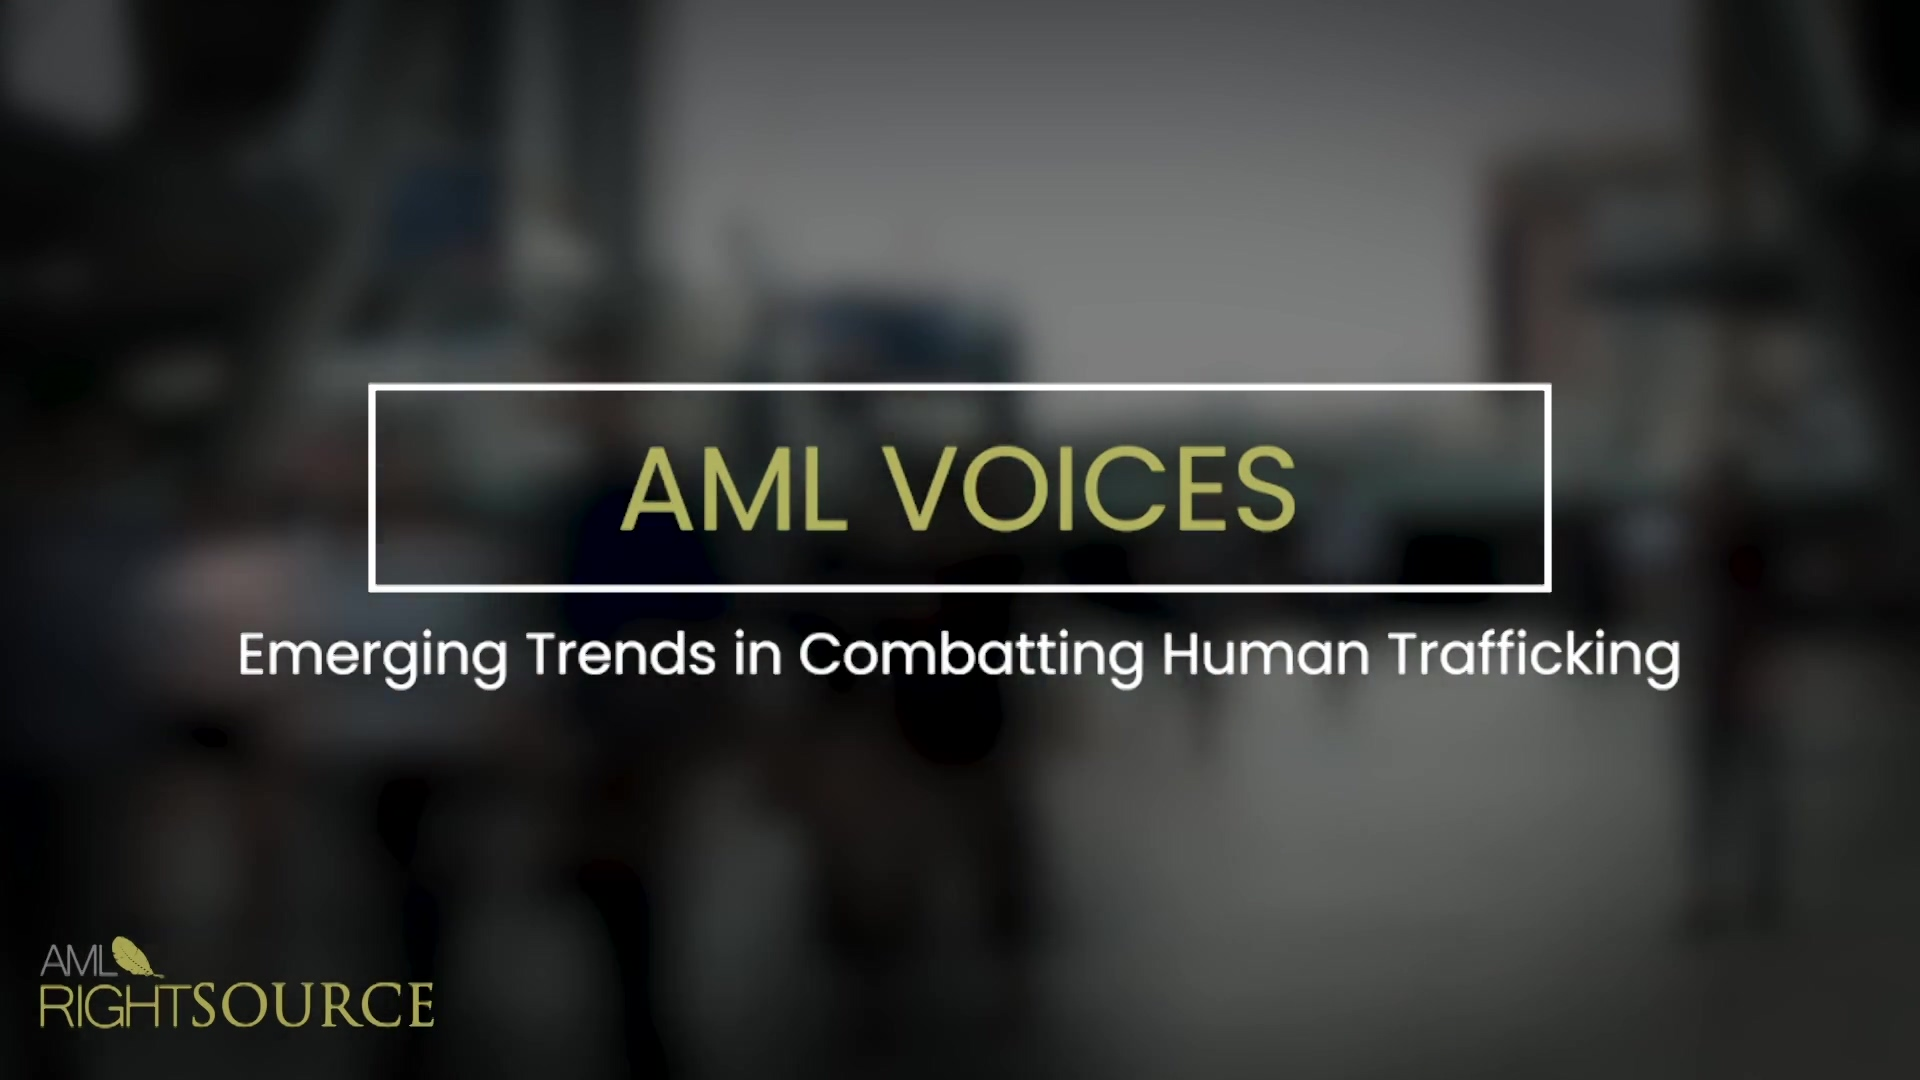 Emerging Trends in Combatting Human Trafficking